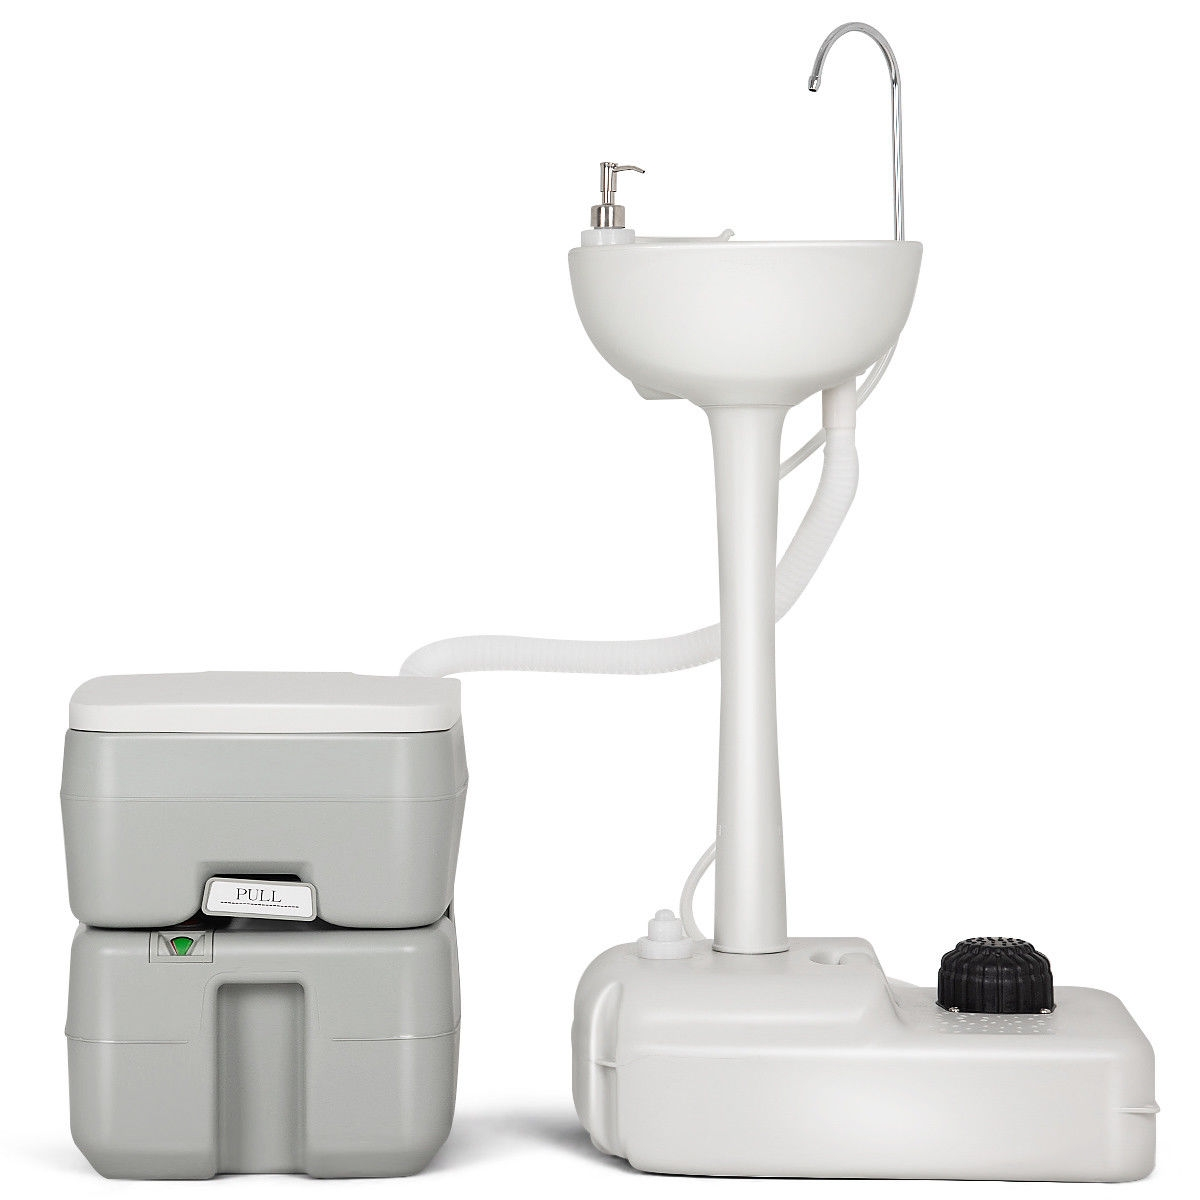 5 Gallon Portable Wash Sink Garden Camping Washing Station